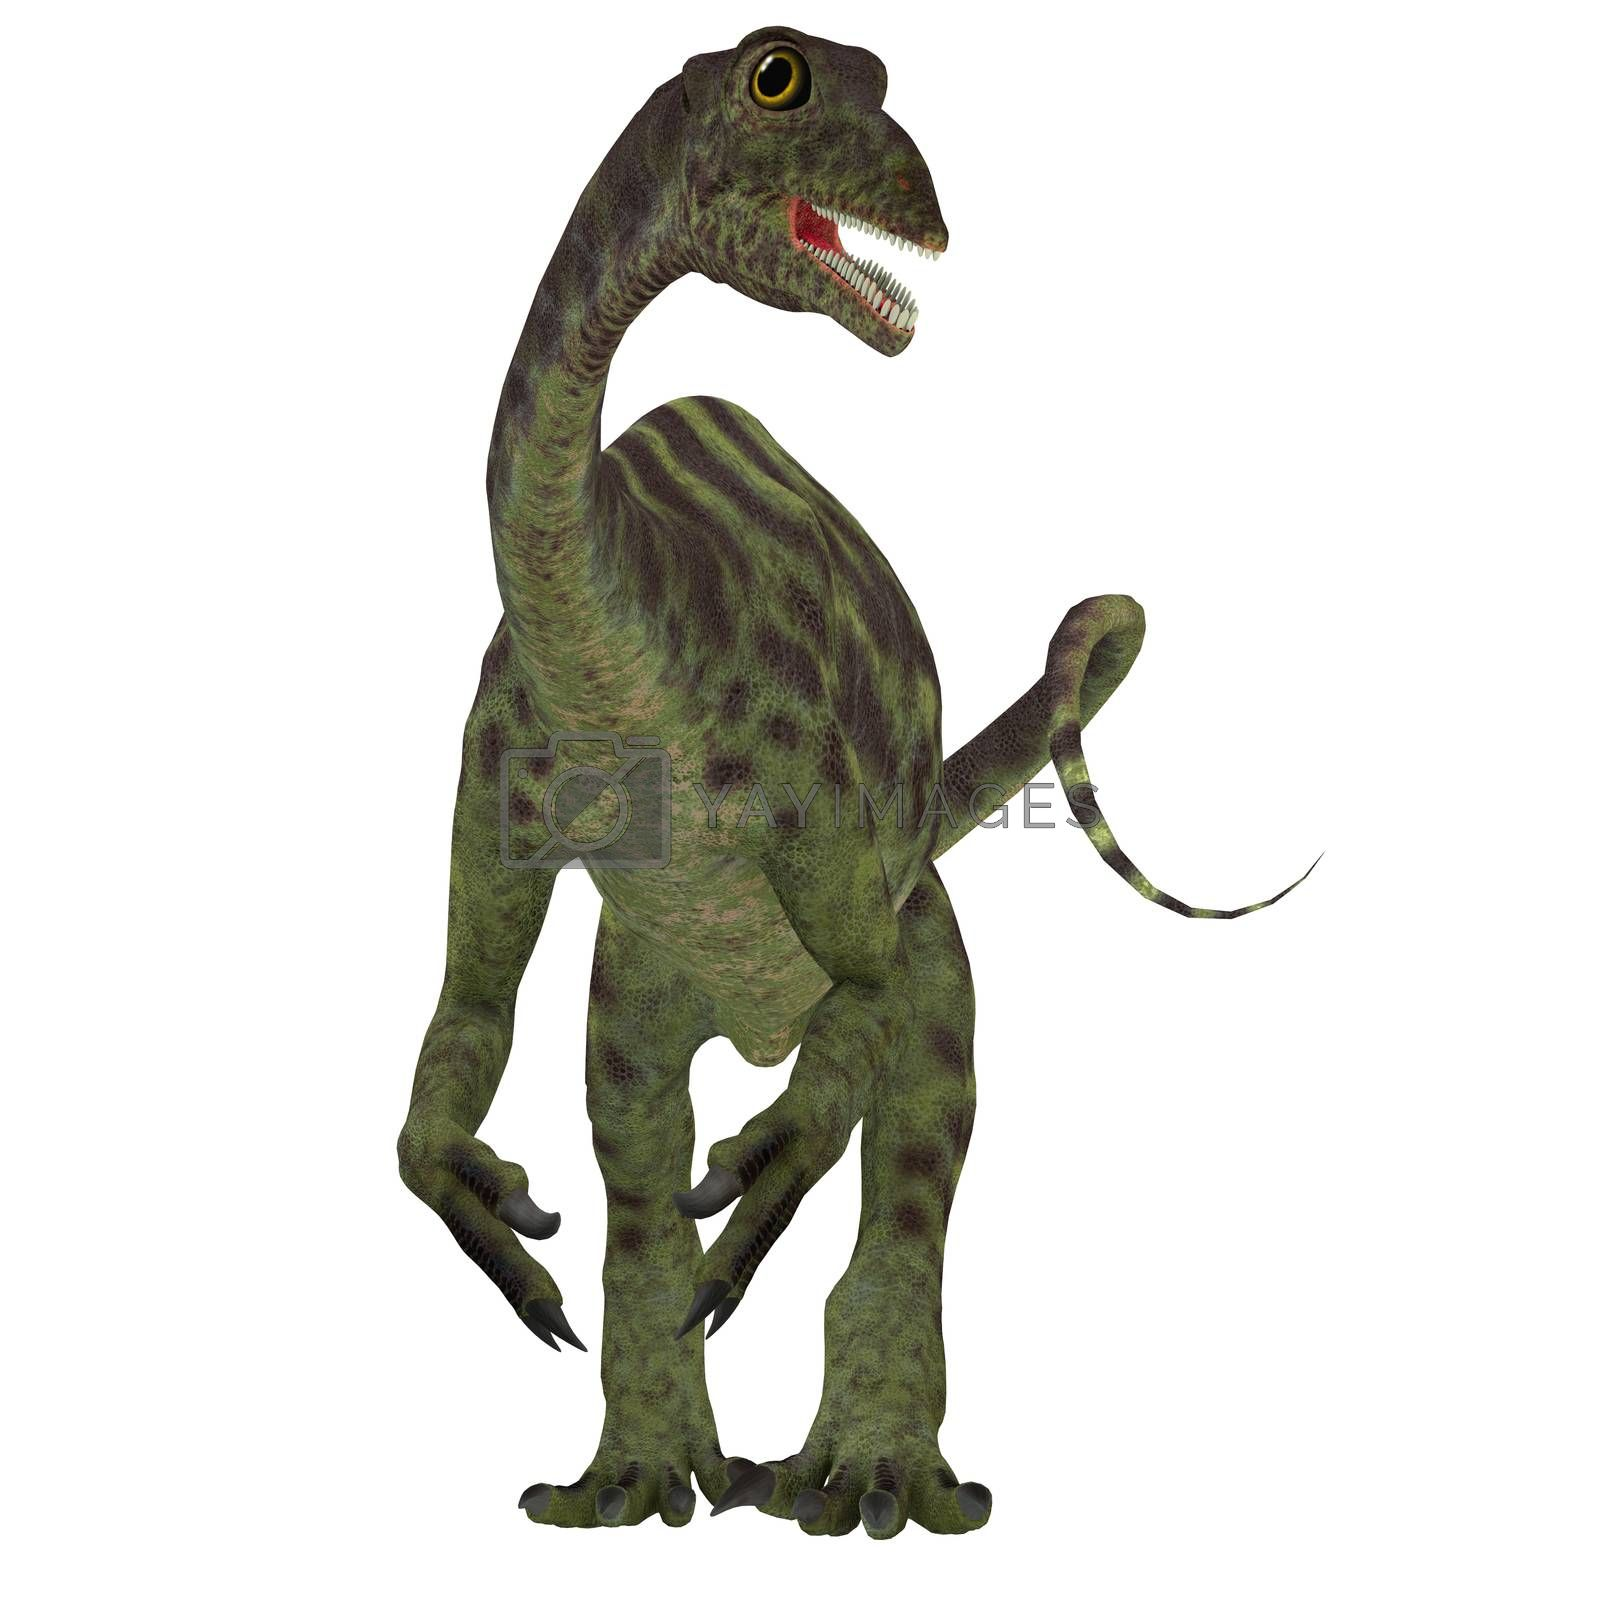 Anchisaurus was a omnivorous prosauropod dinosaur that lived in the Jurassic Periods of North America, Europe and Africa.